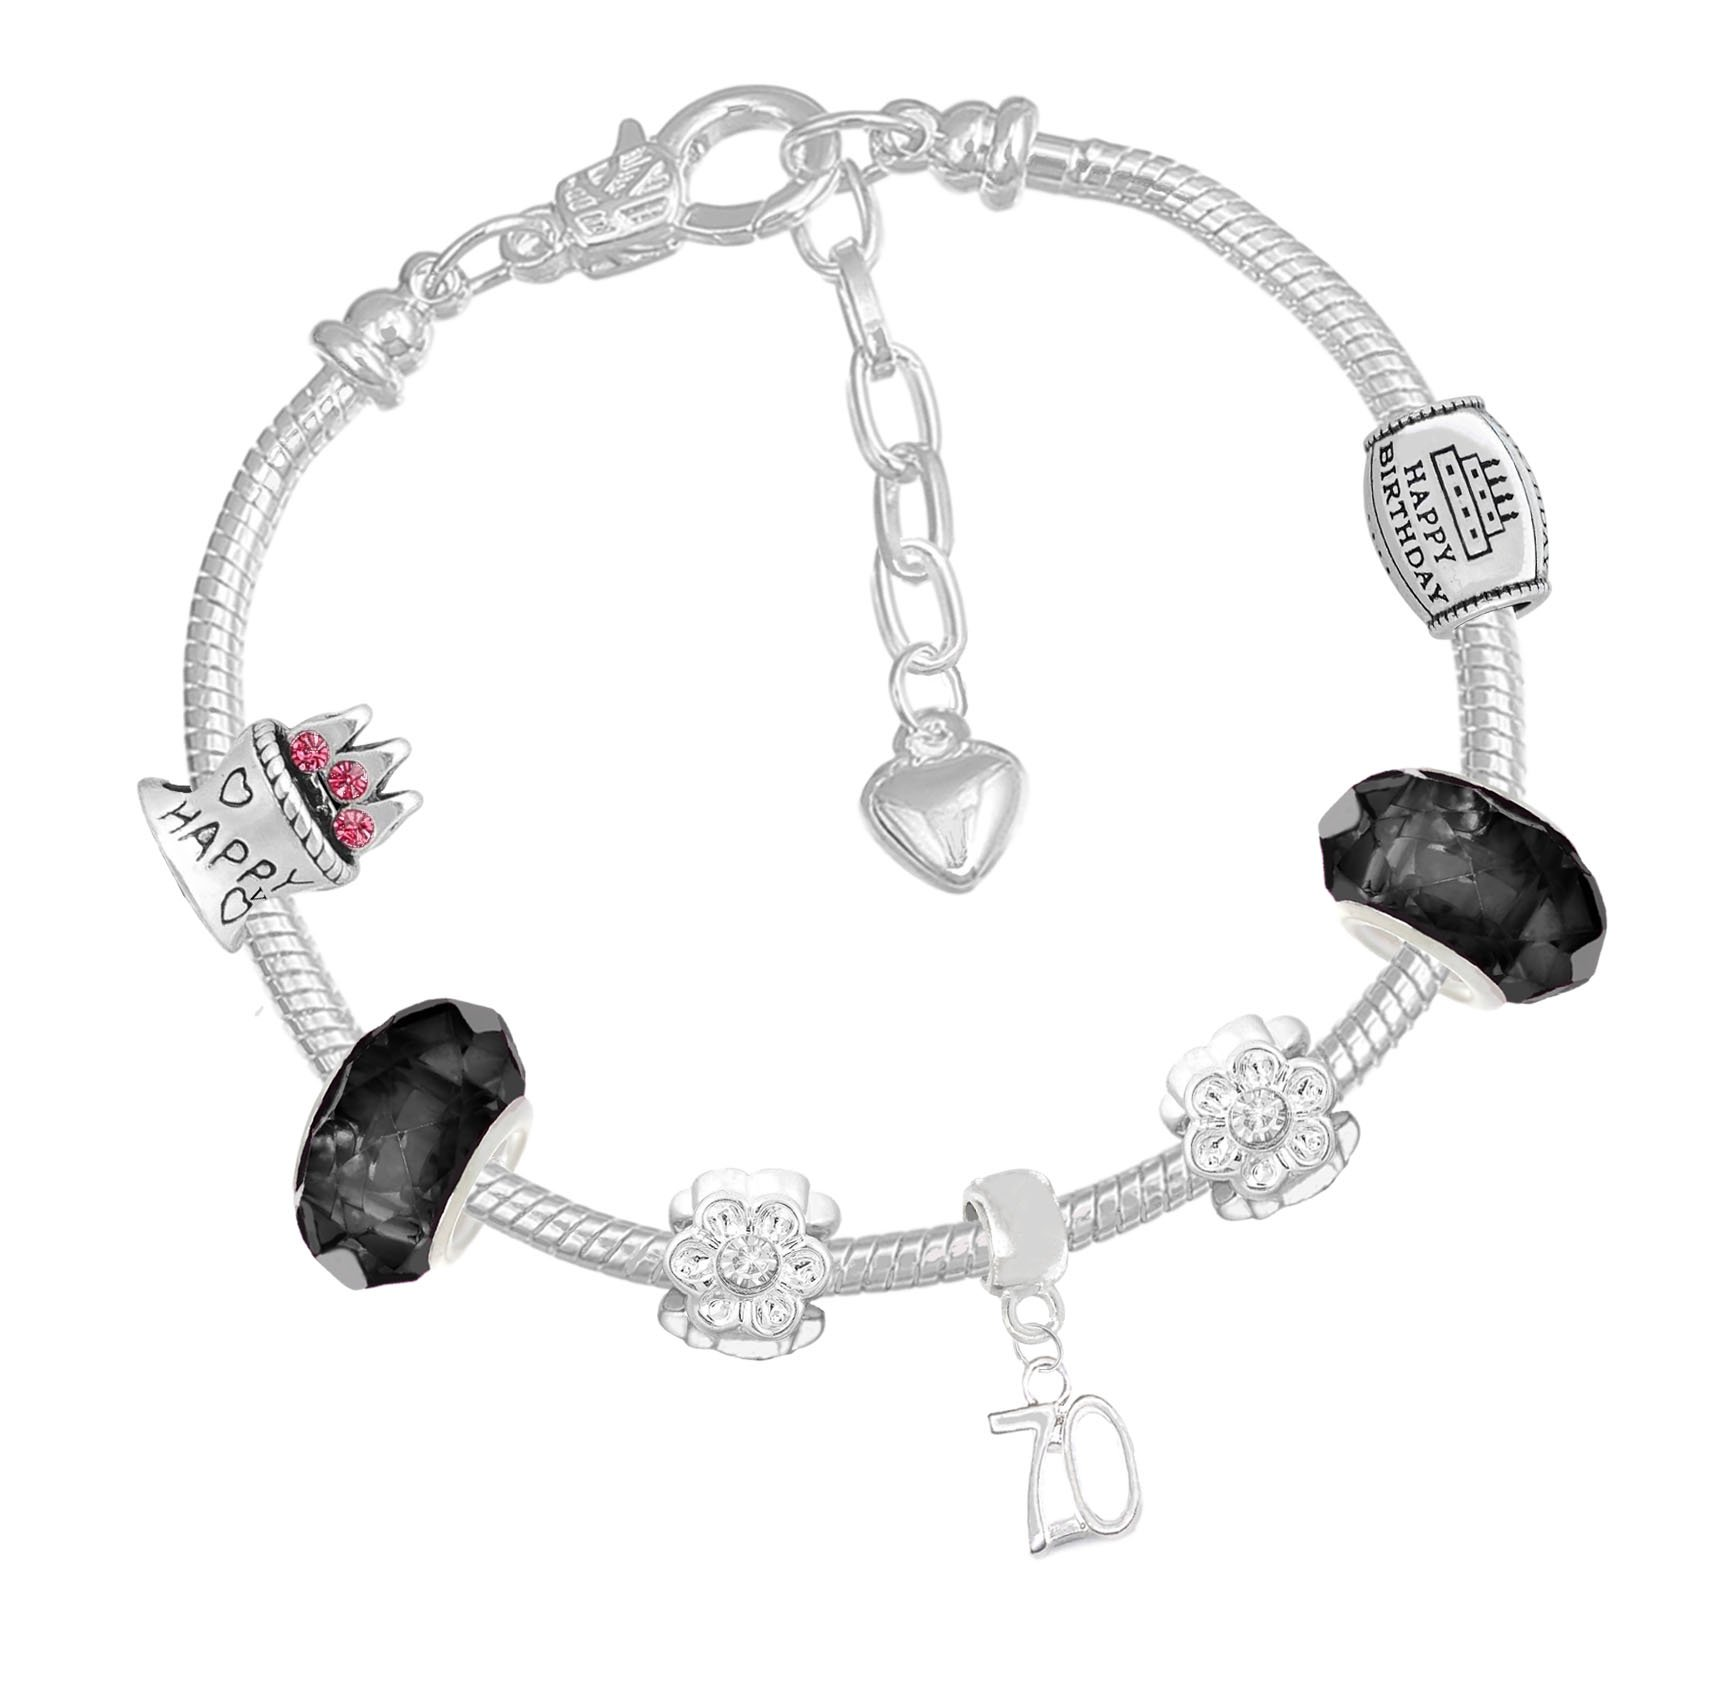 70th Birthday Good Luck Lucky Black Silver Pandora Style Bracelet With Charms Gift Box Jewelry by Charm Buddy (Image #1)